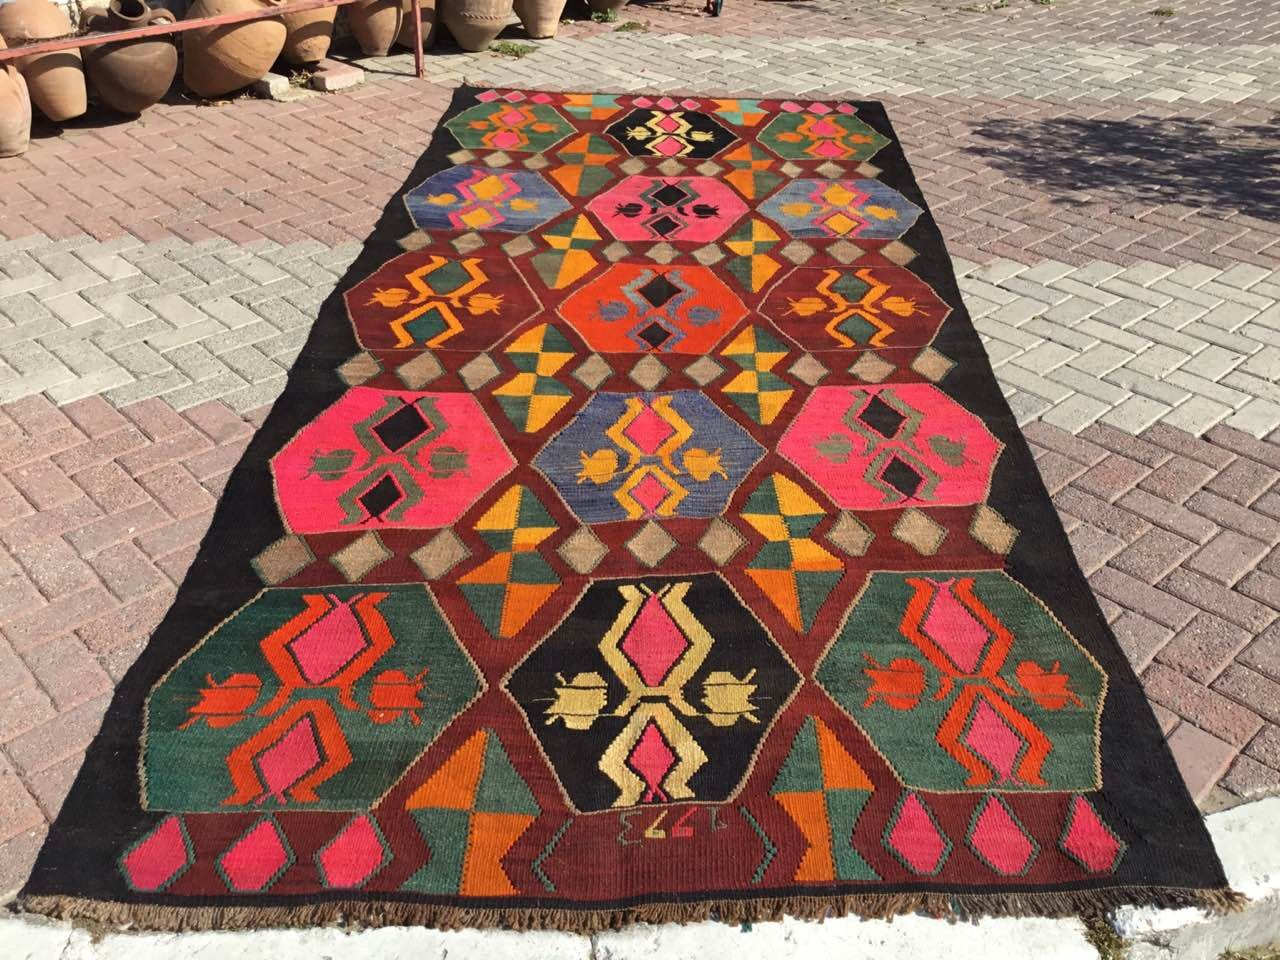 Large Area Rug Vintage Colorful Kilim Rug 158 X Etsy Colorful Kilim Colorful Kilim Rugs Colorful Area Rug